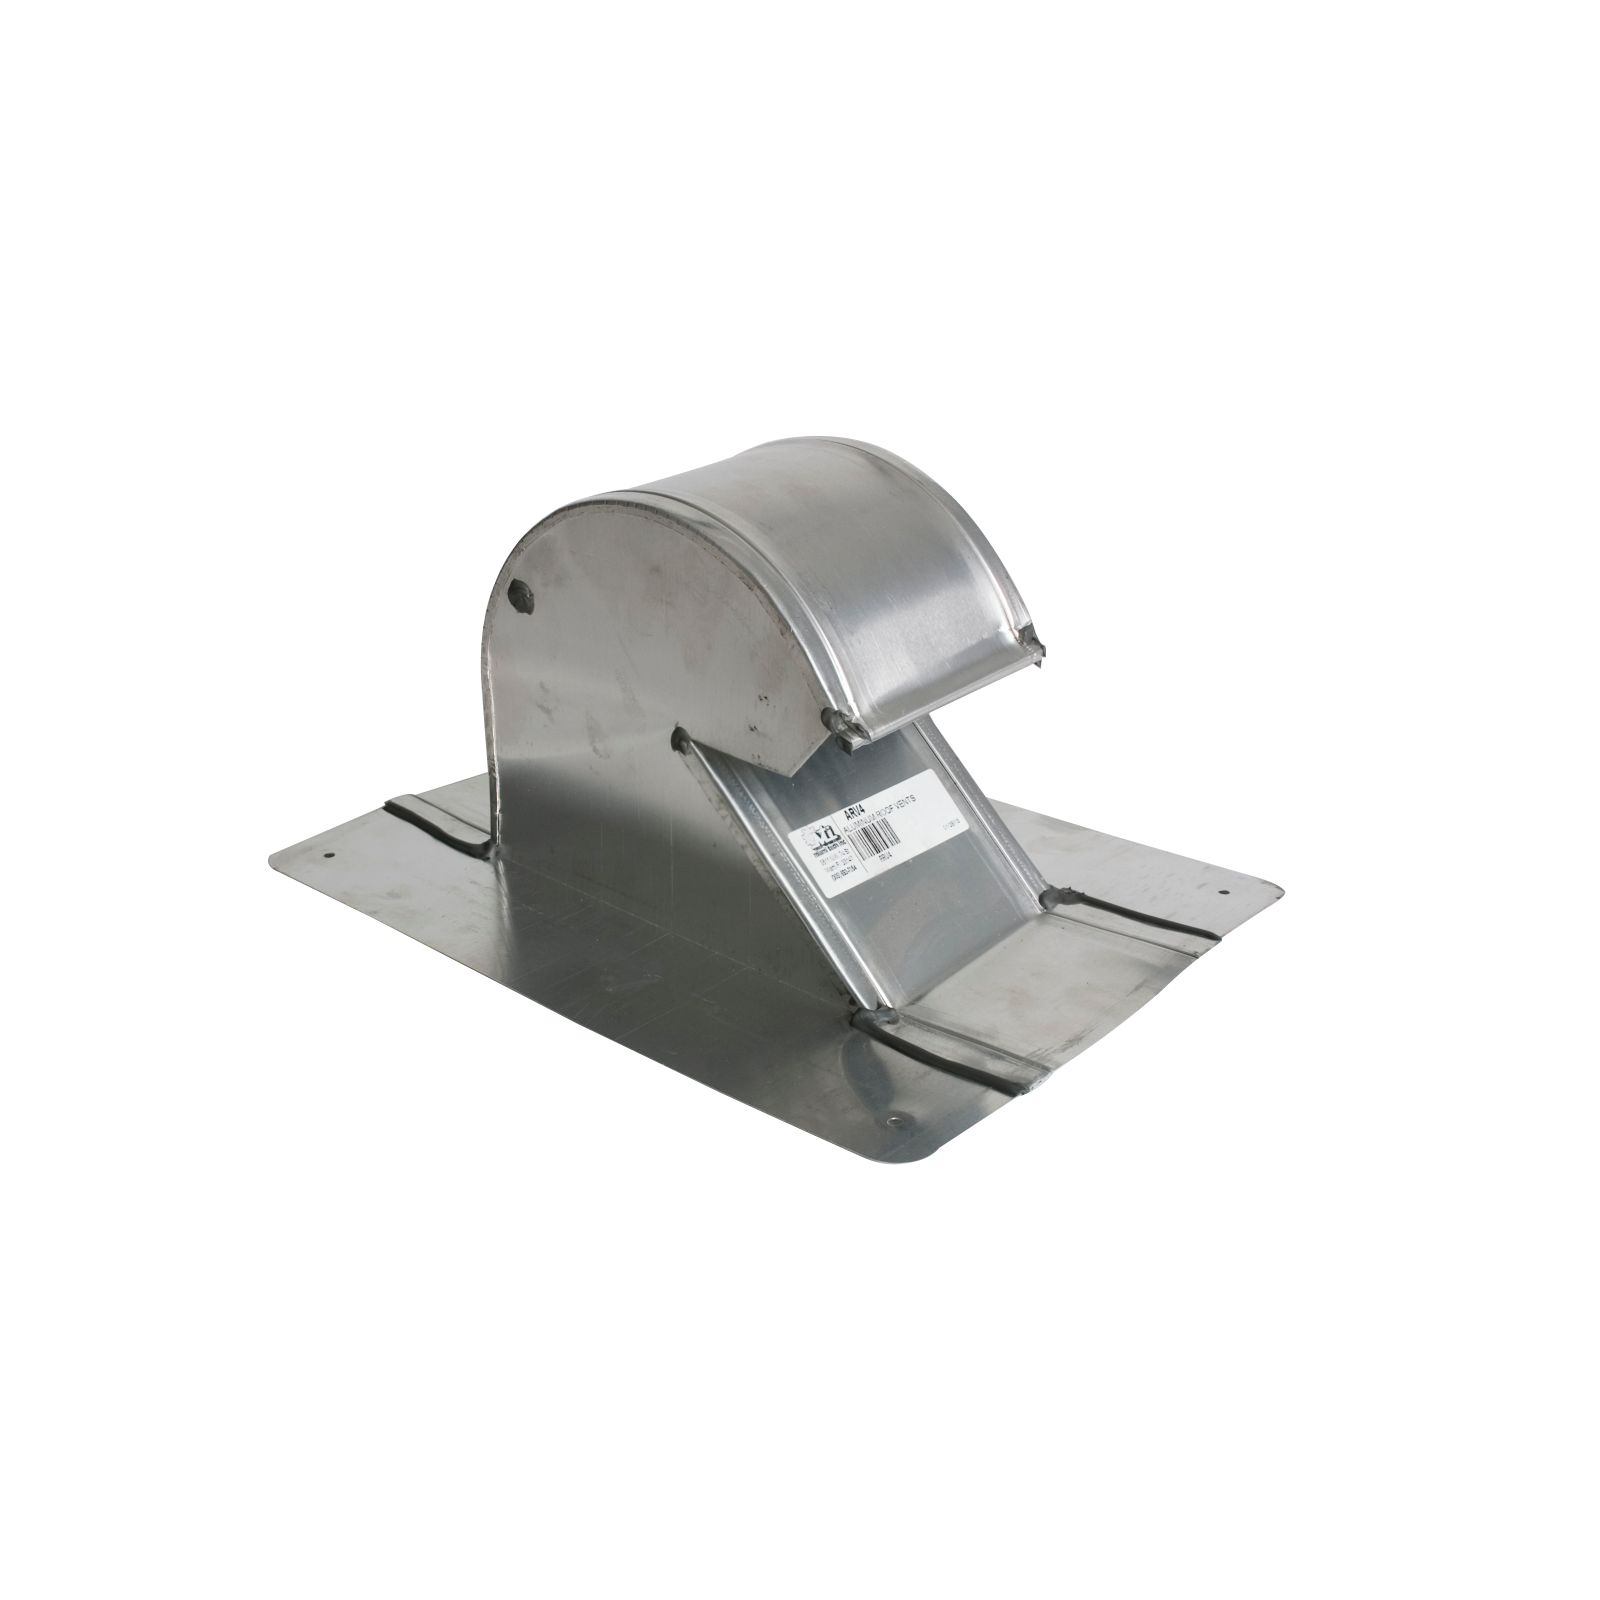 "Miami Tech ARV4D - Aluminum 4"" Roof Vents with Damper"